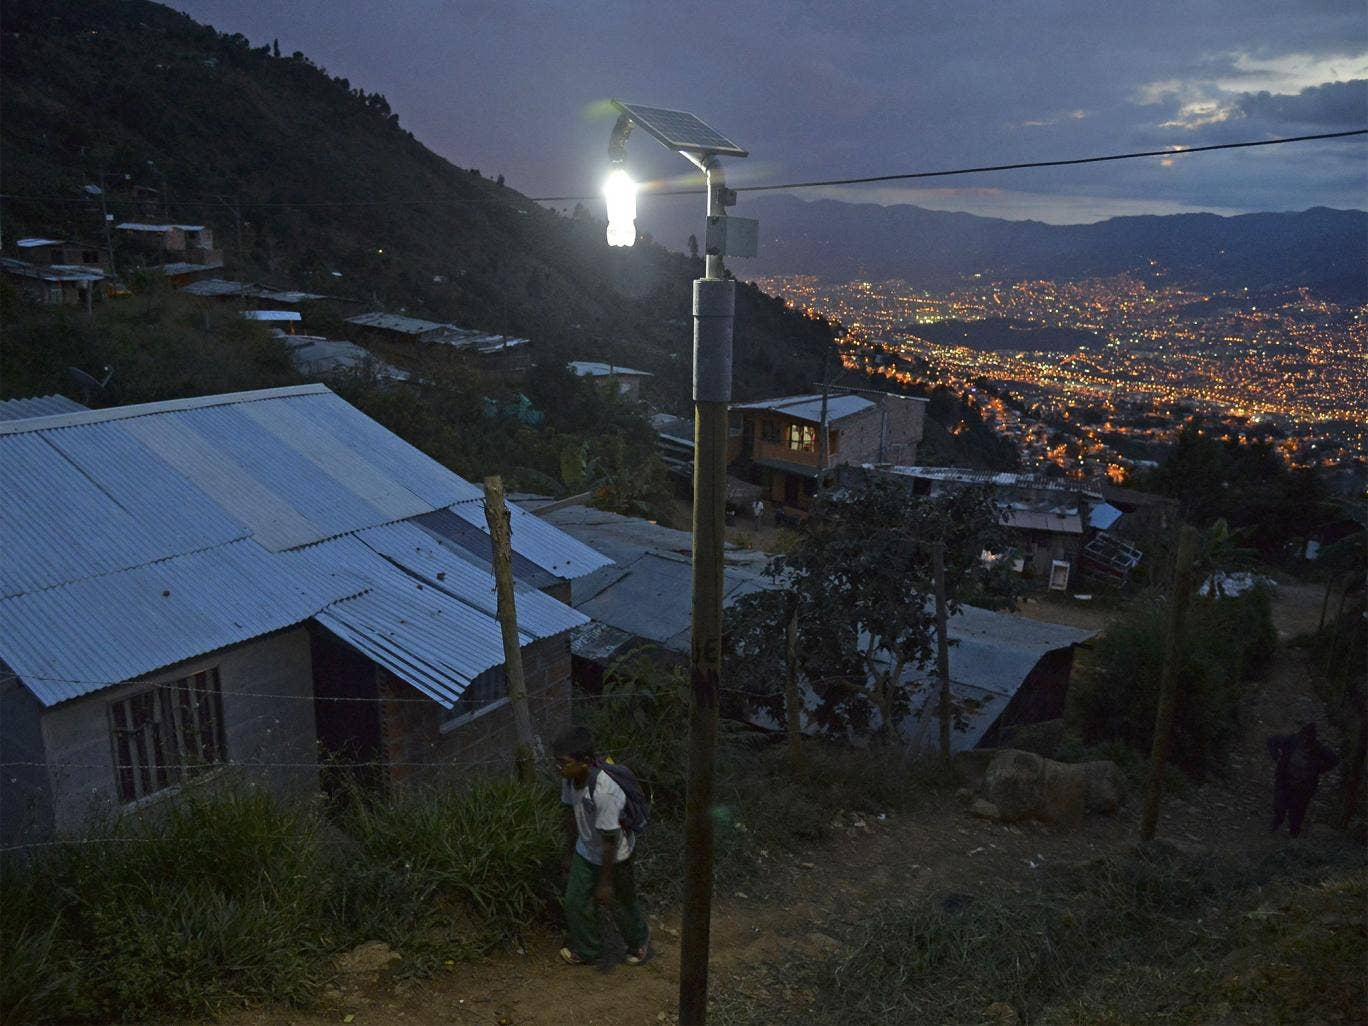 Liter Of Lights Solar Powered Diy Lamp Made From A Plastic Bottle Outdoor Light Fixture Kills Everything On Circuit Electrical Is Transforming Lives The Independent